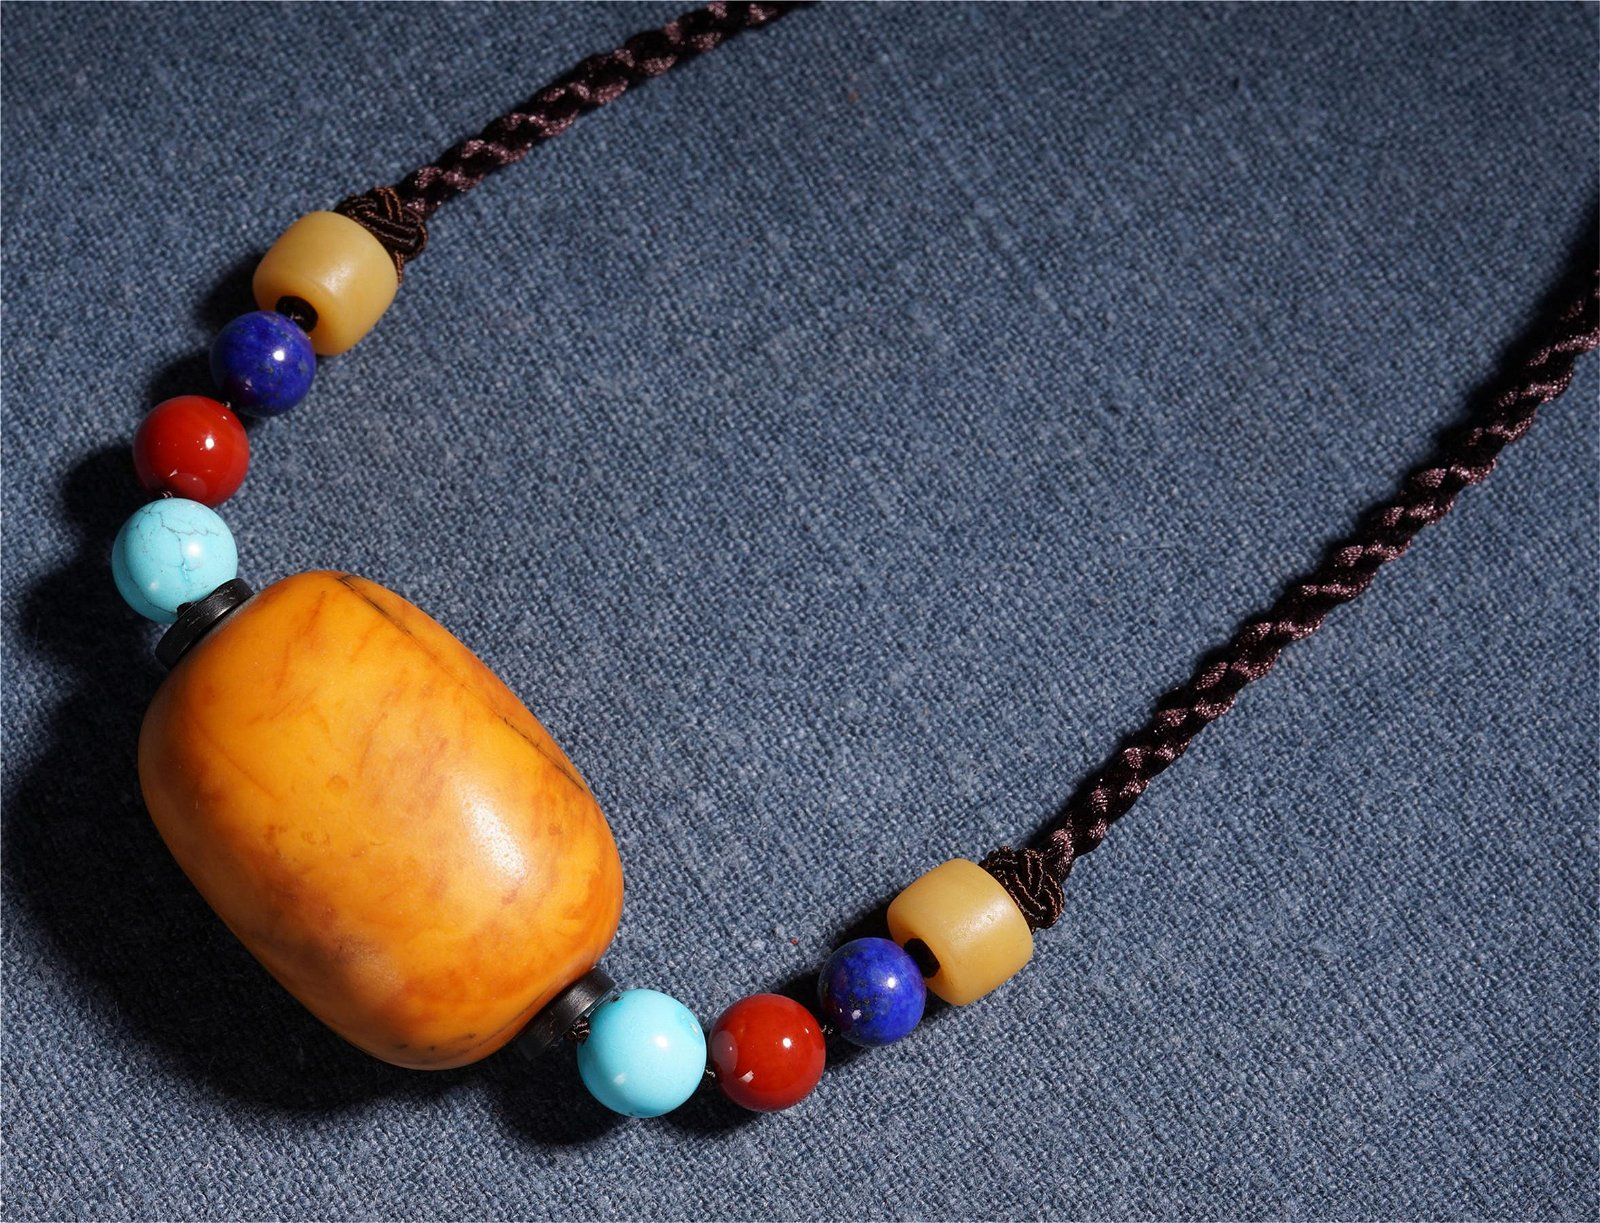 AN ANCIENT CHINESE AMBER CARVED NECKLACE